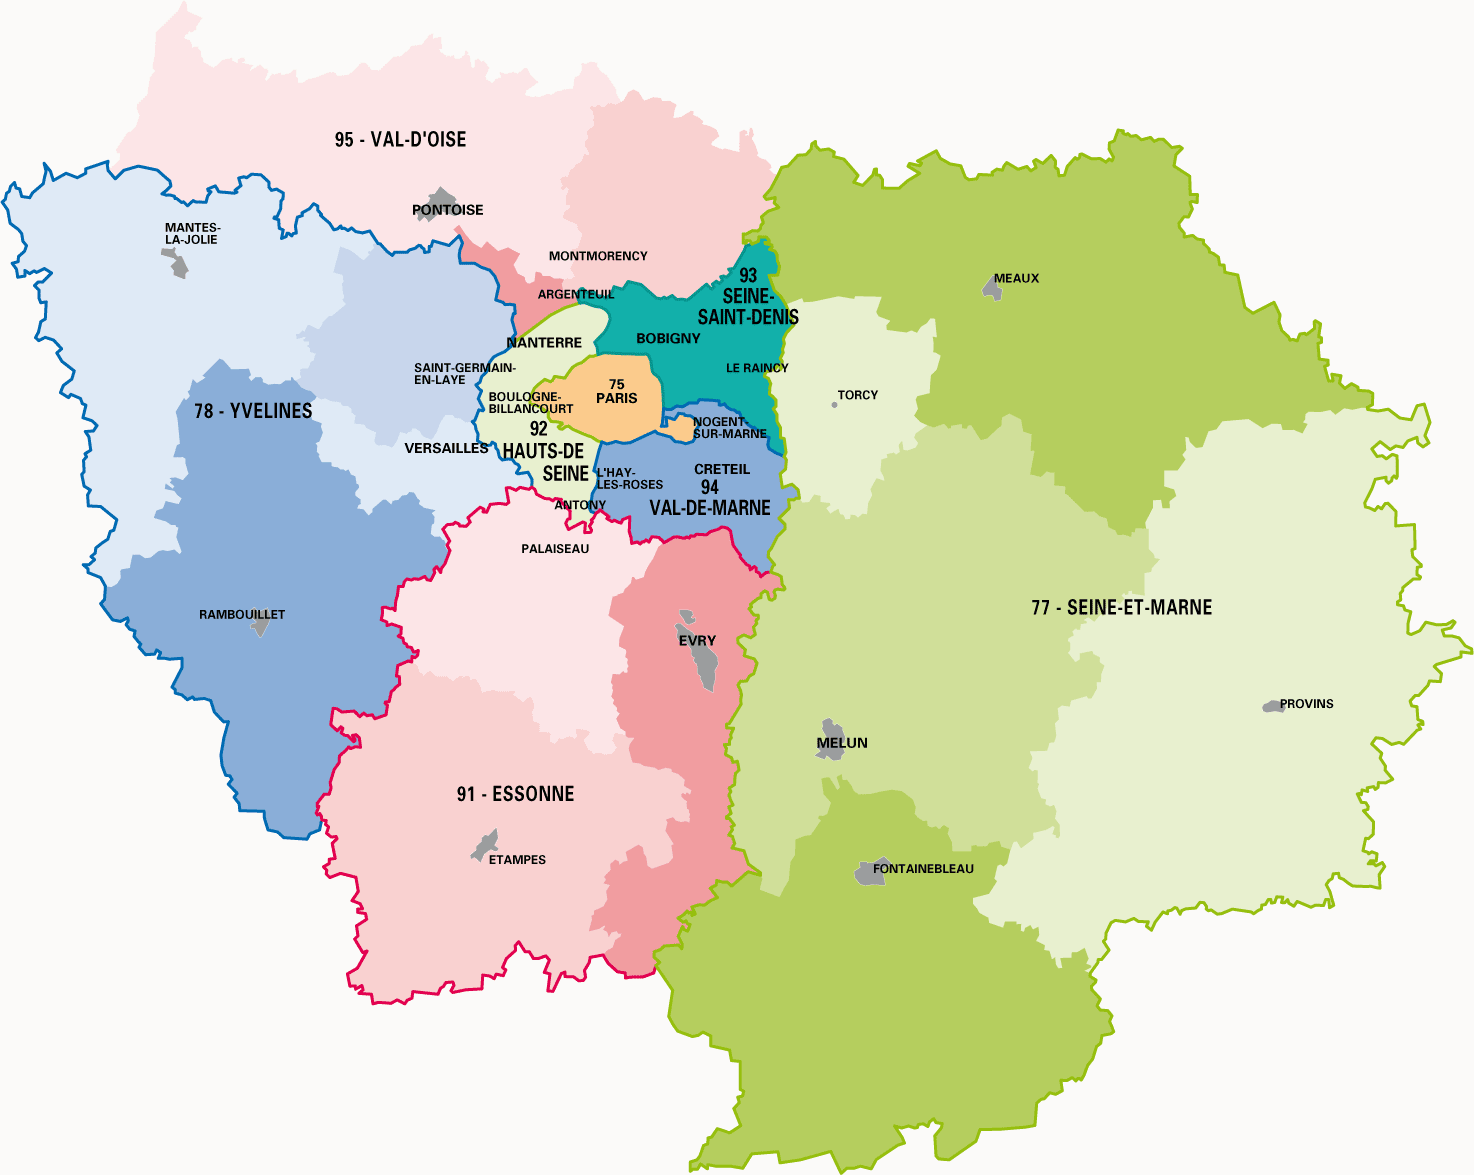 carte departements de france La carte des départements de la région Ile de France